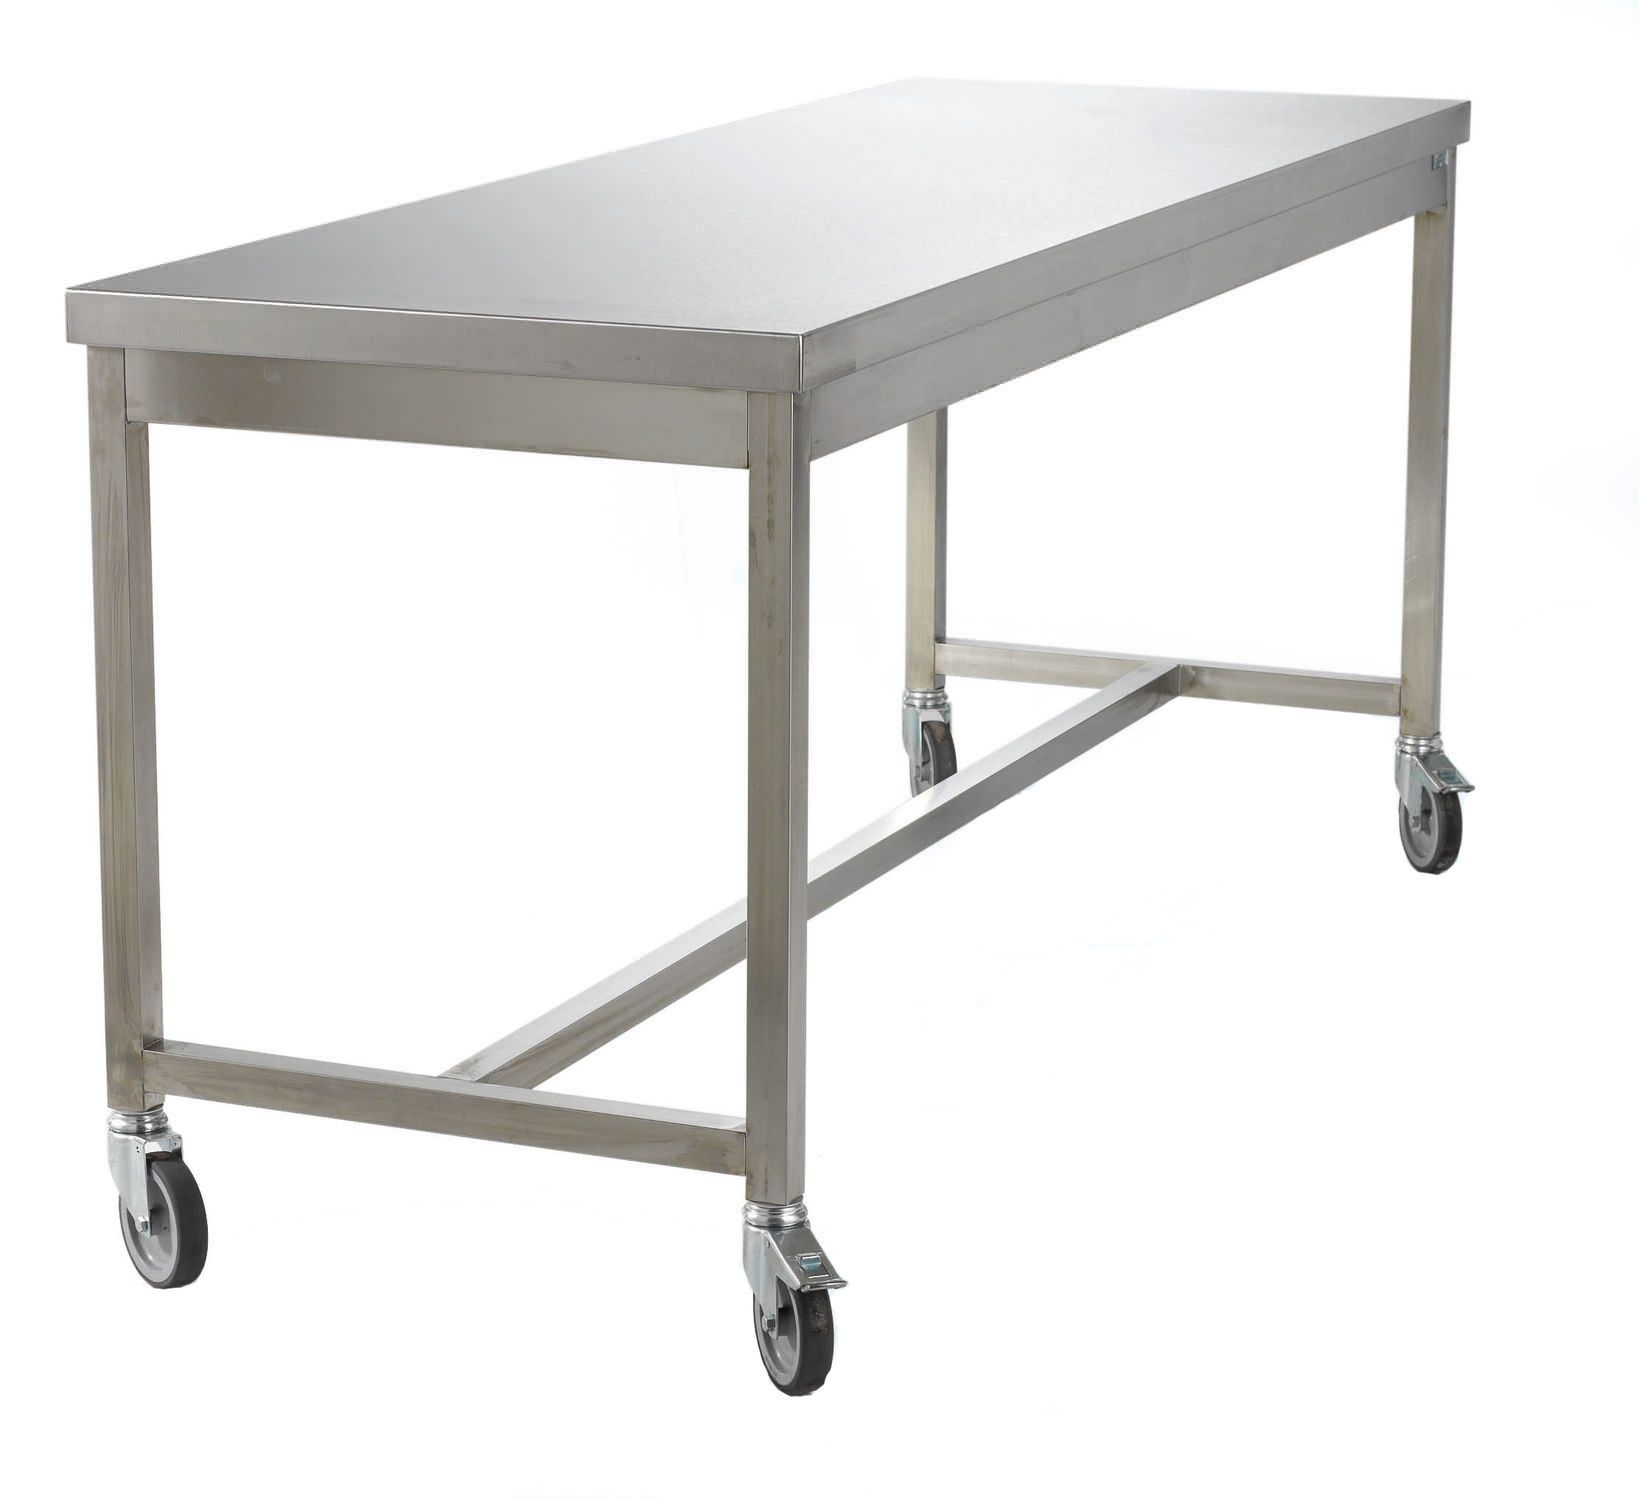 Restaurant stainless steel kitchen work prep table nsf chef shelf com - Work Table Rectangular On Casters Stainless Steel Sclessin Productions